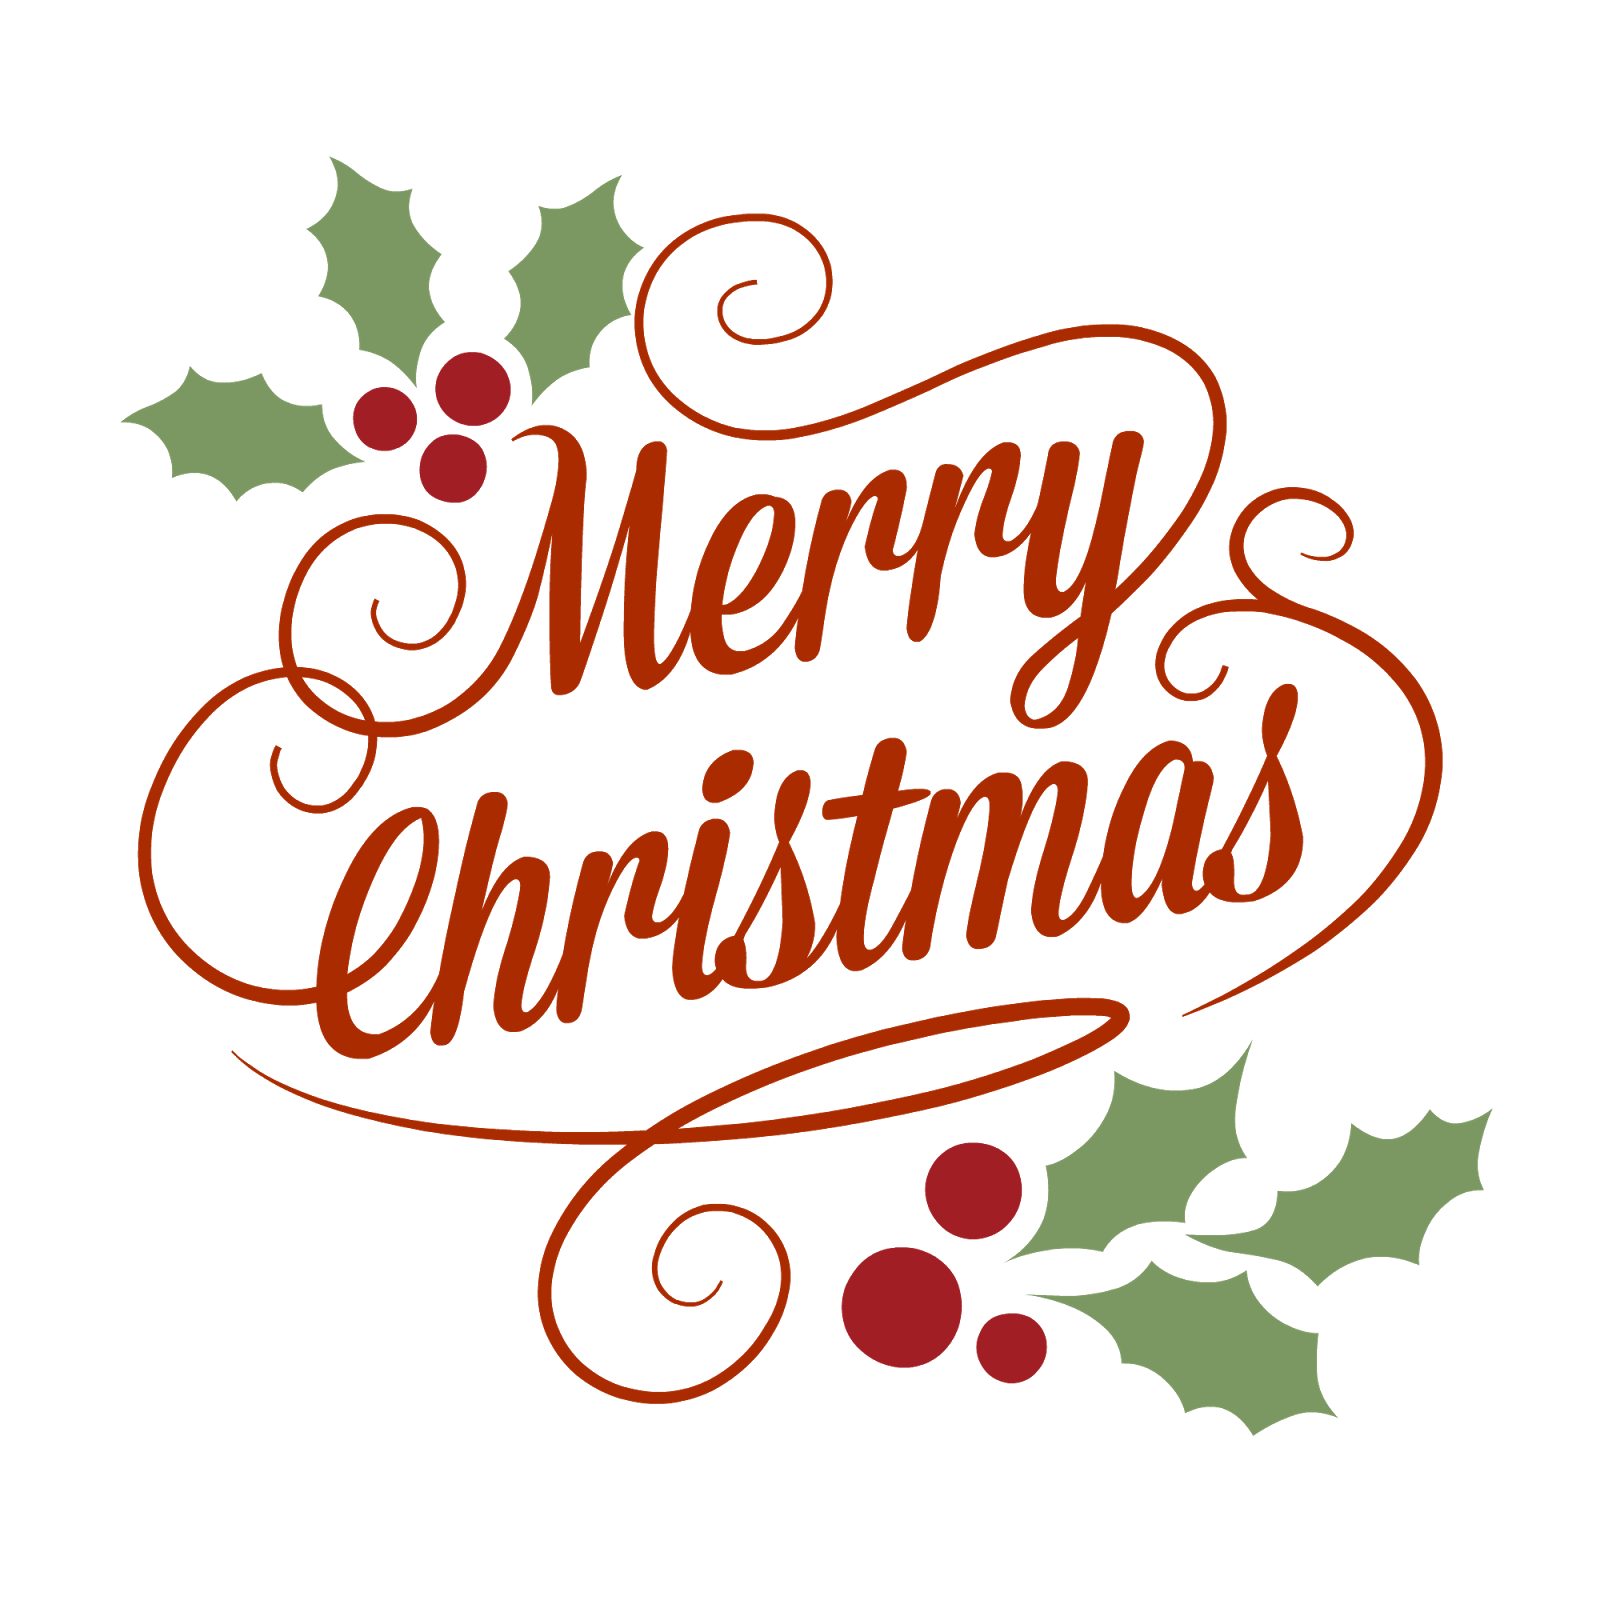 Merry Christmas Images Png.Merry Christmas Classical Vintage Sign Transparent Png